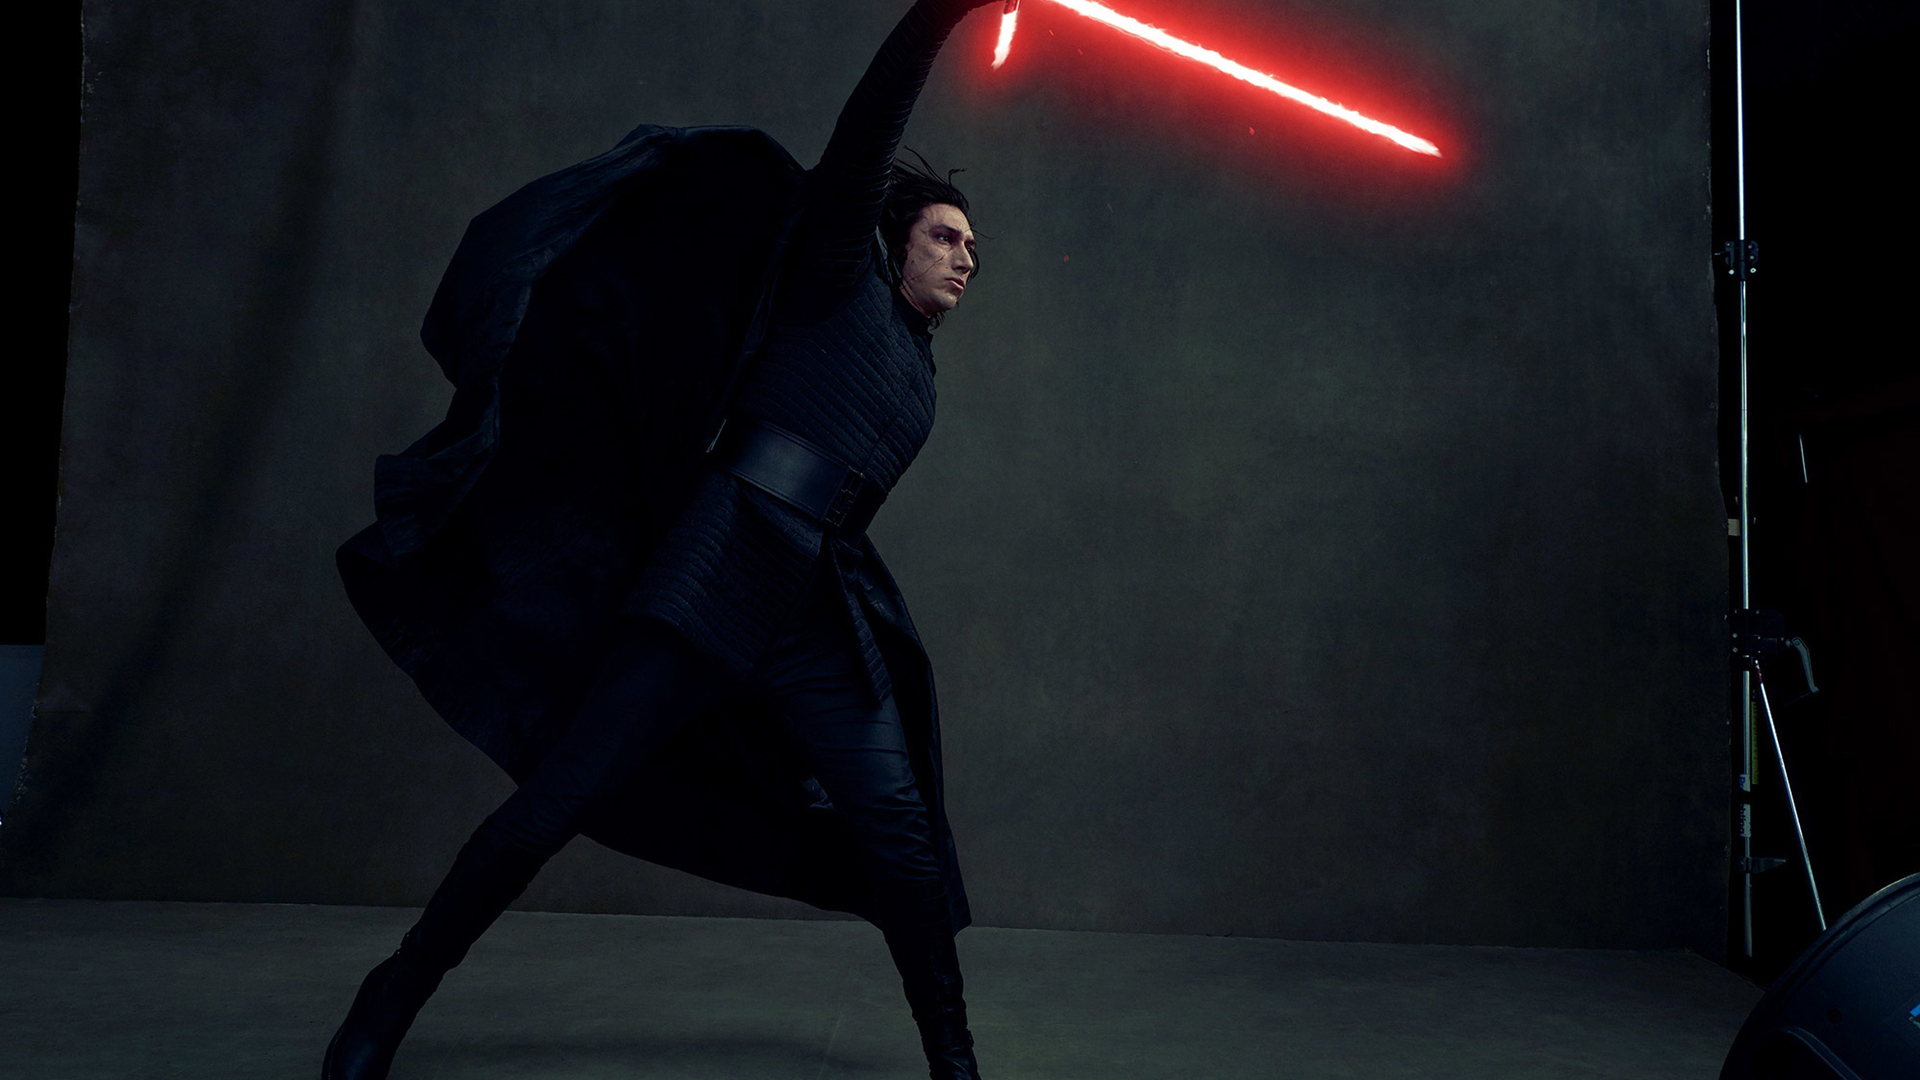 1920x1080 Kylo Ren In Star Wars The Last Jedi 4k Vanity Fair